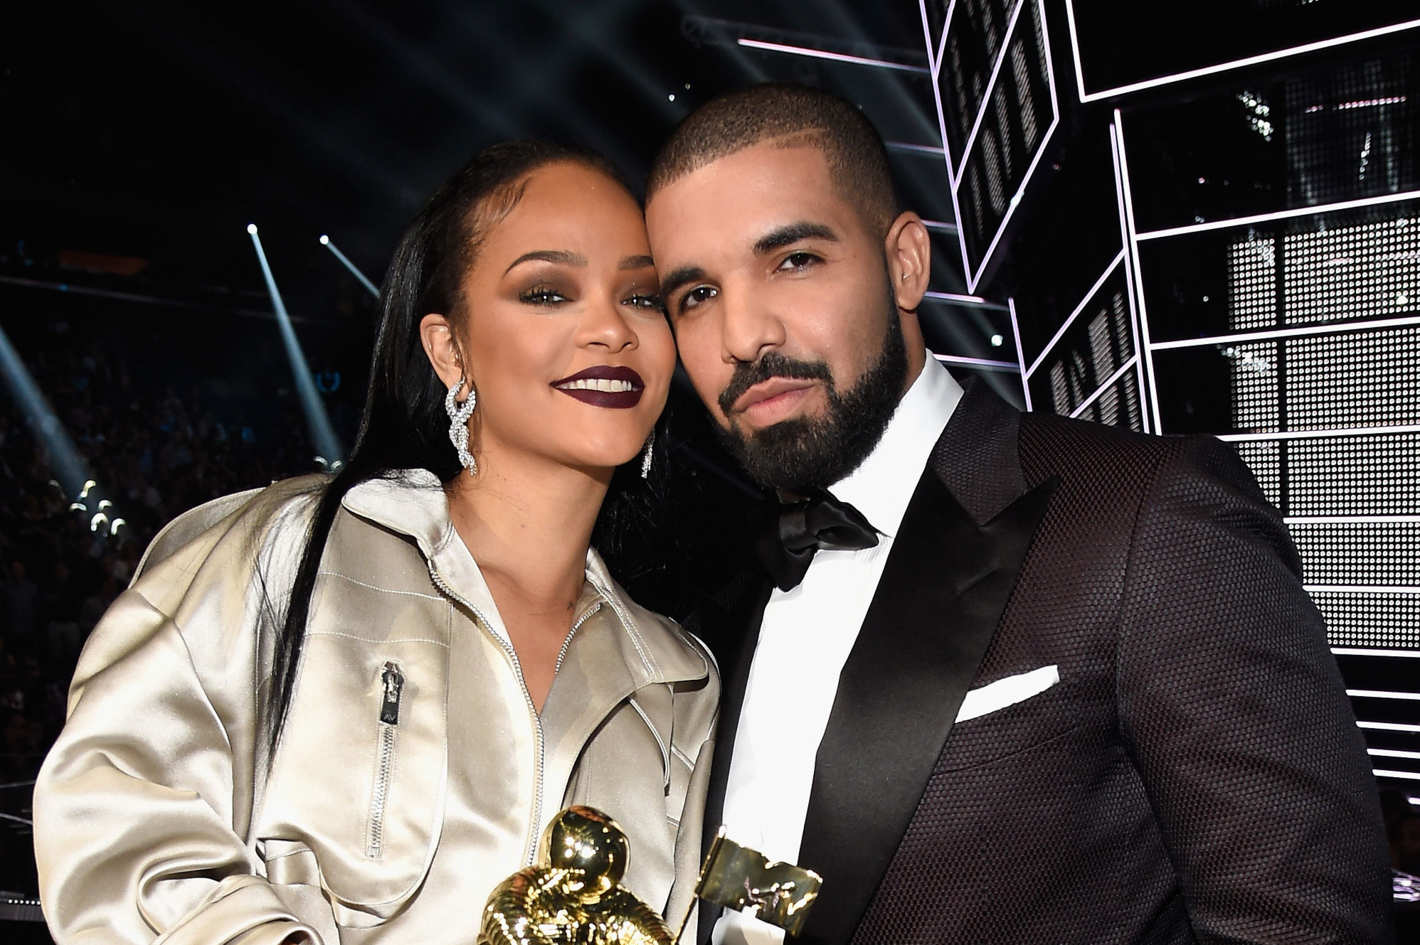 Drake & Rihanna Are Spotify's Most Streamed Artists of the